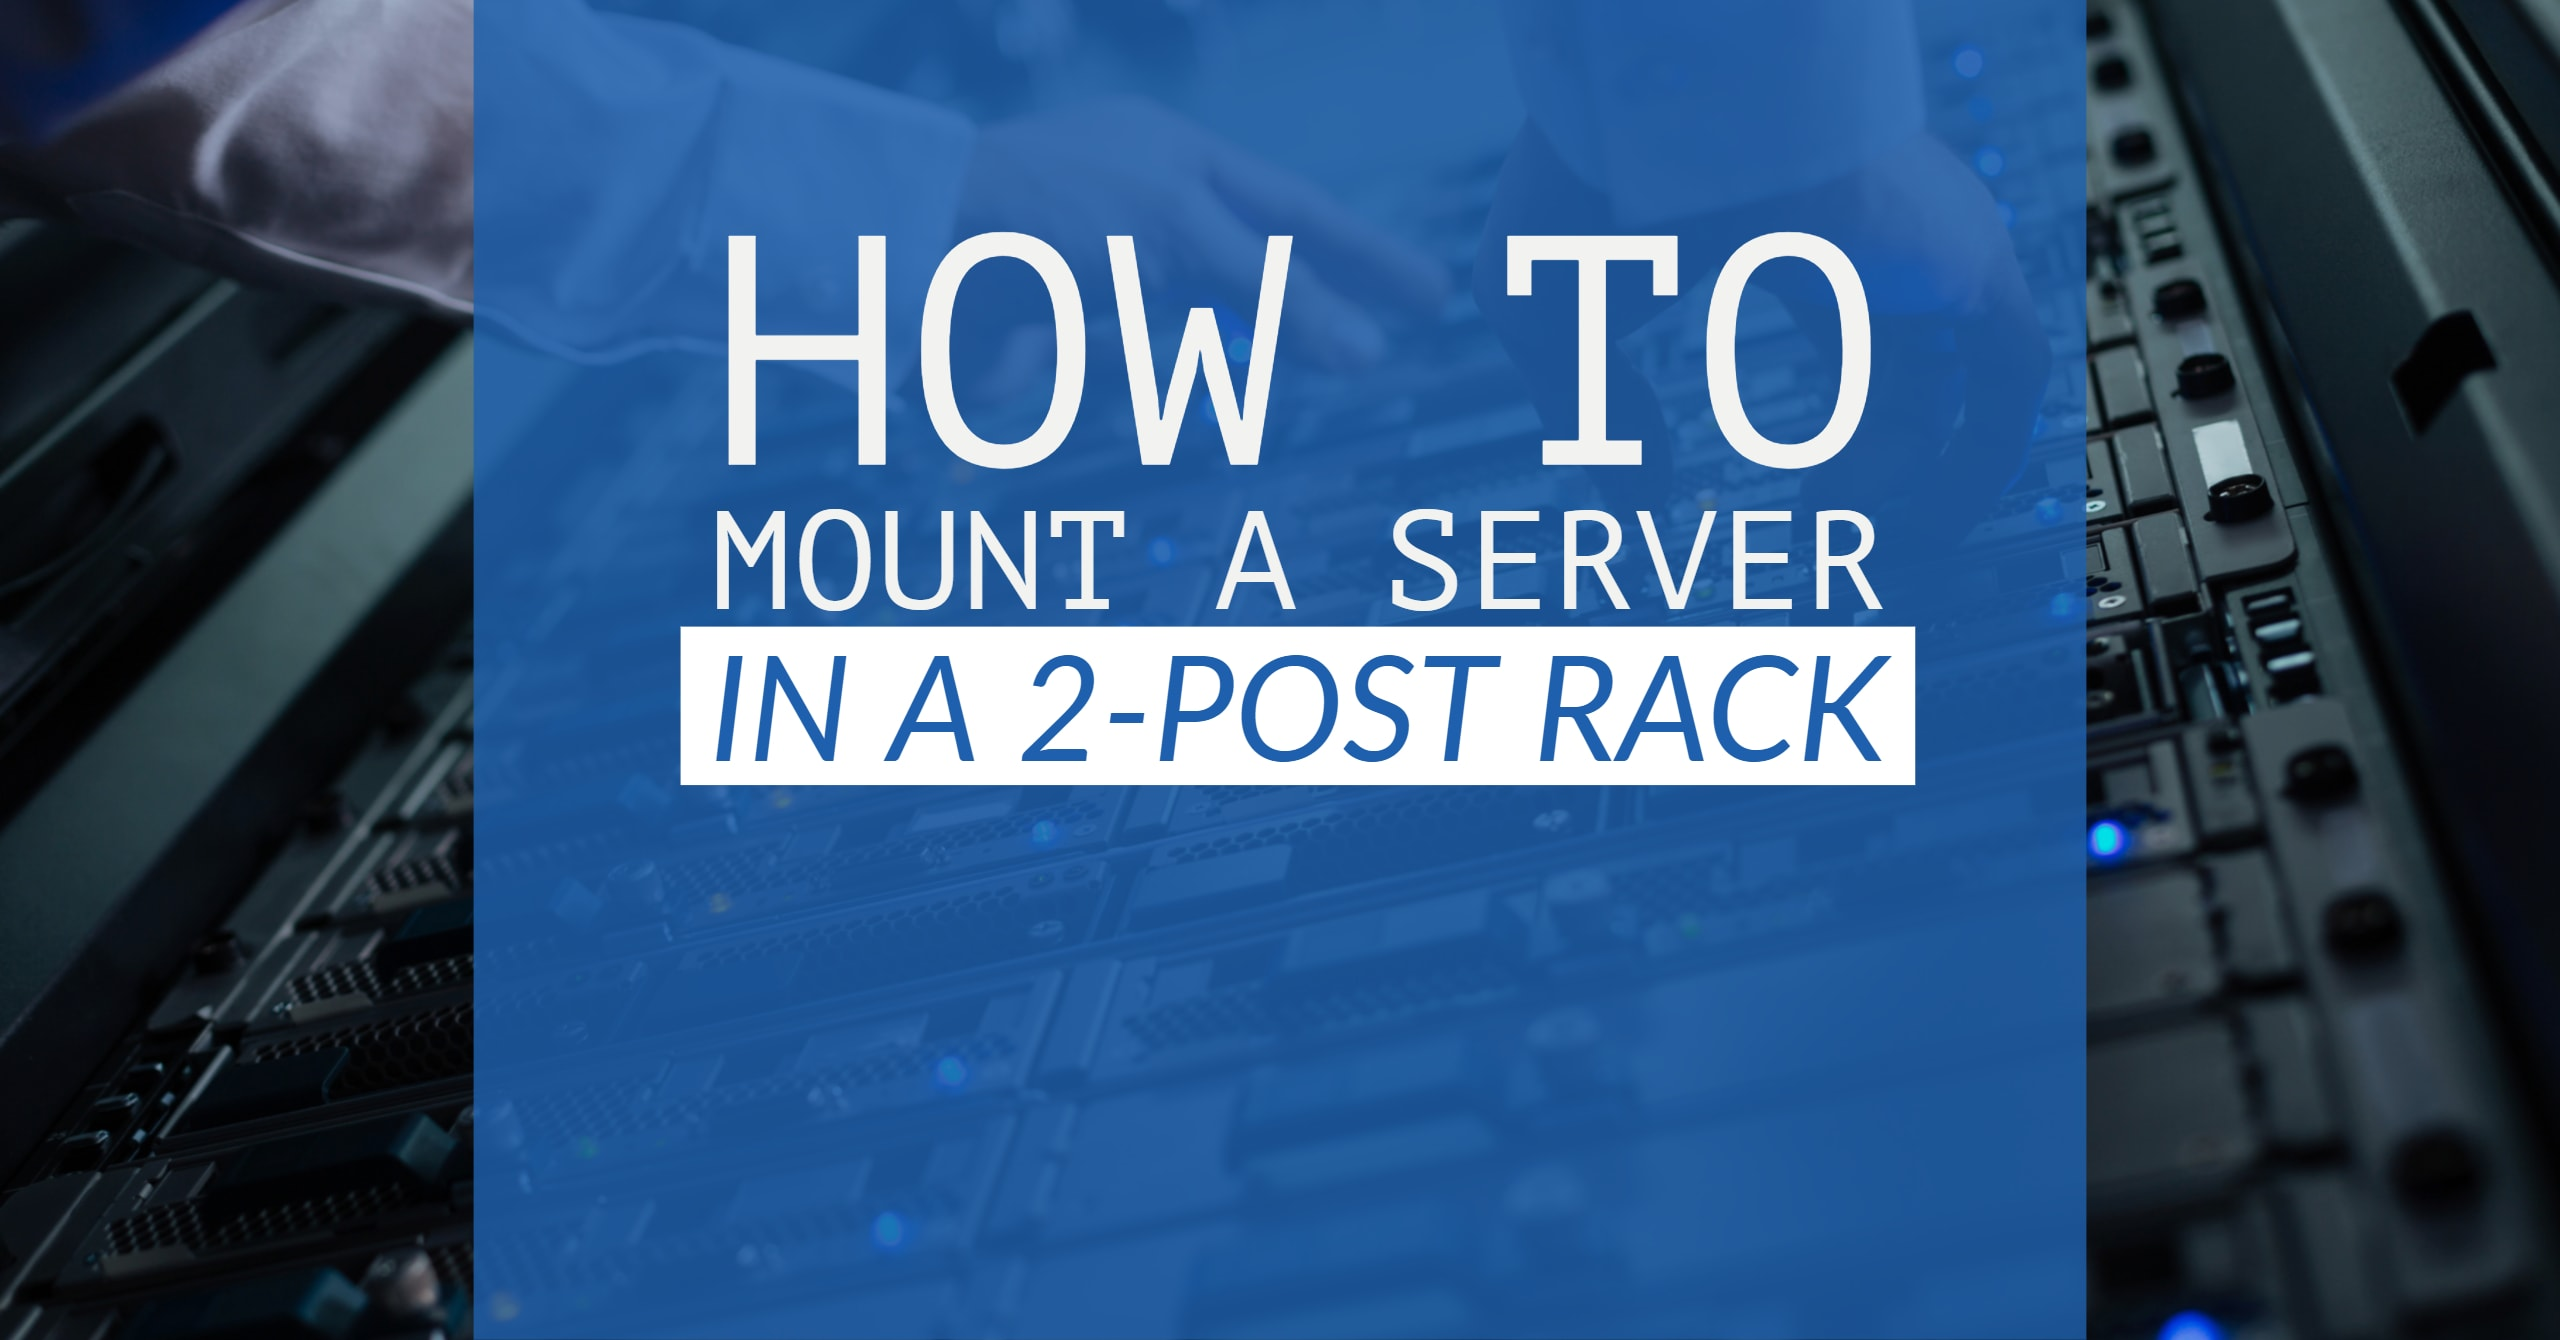 How to Mount a Server in a 2-Post Rack